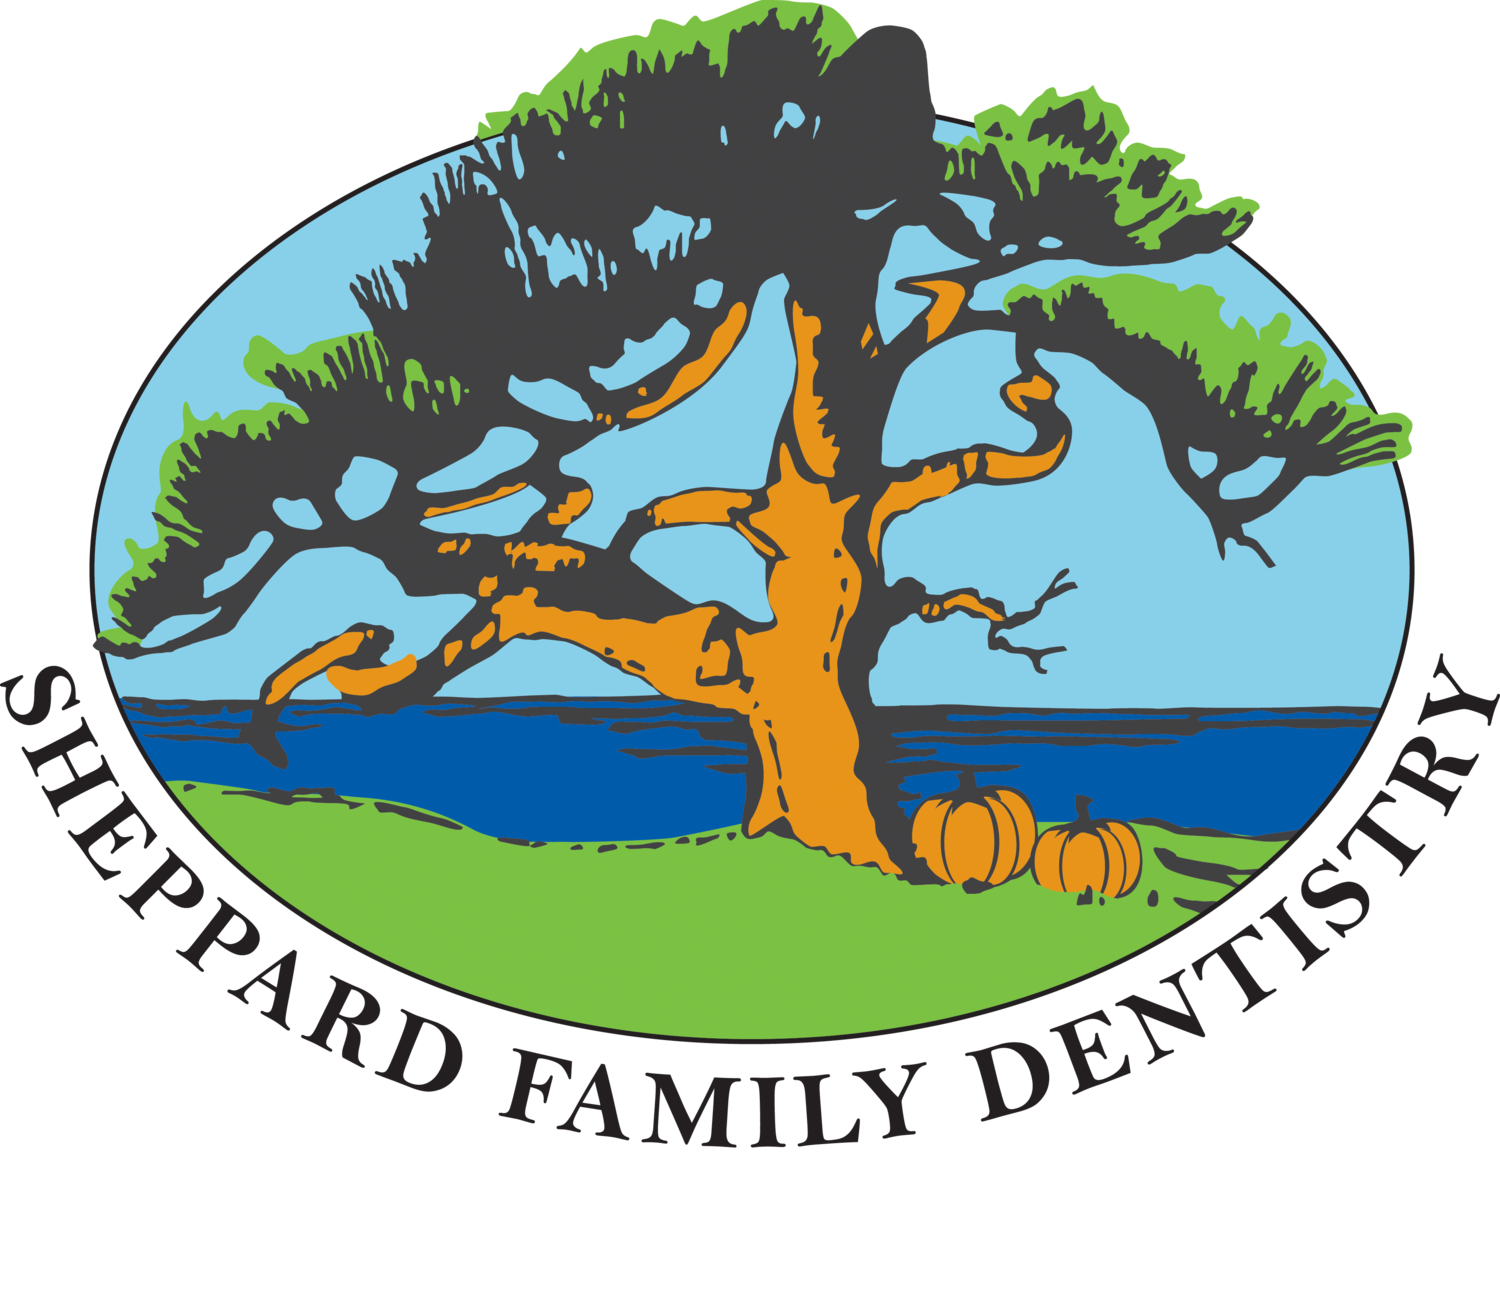 Dentist clipart visited. Sheppard family dentistry